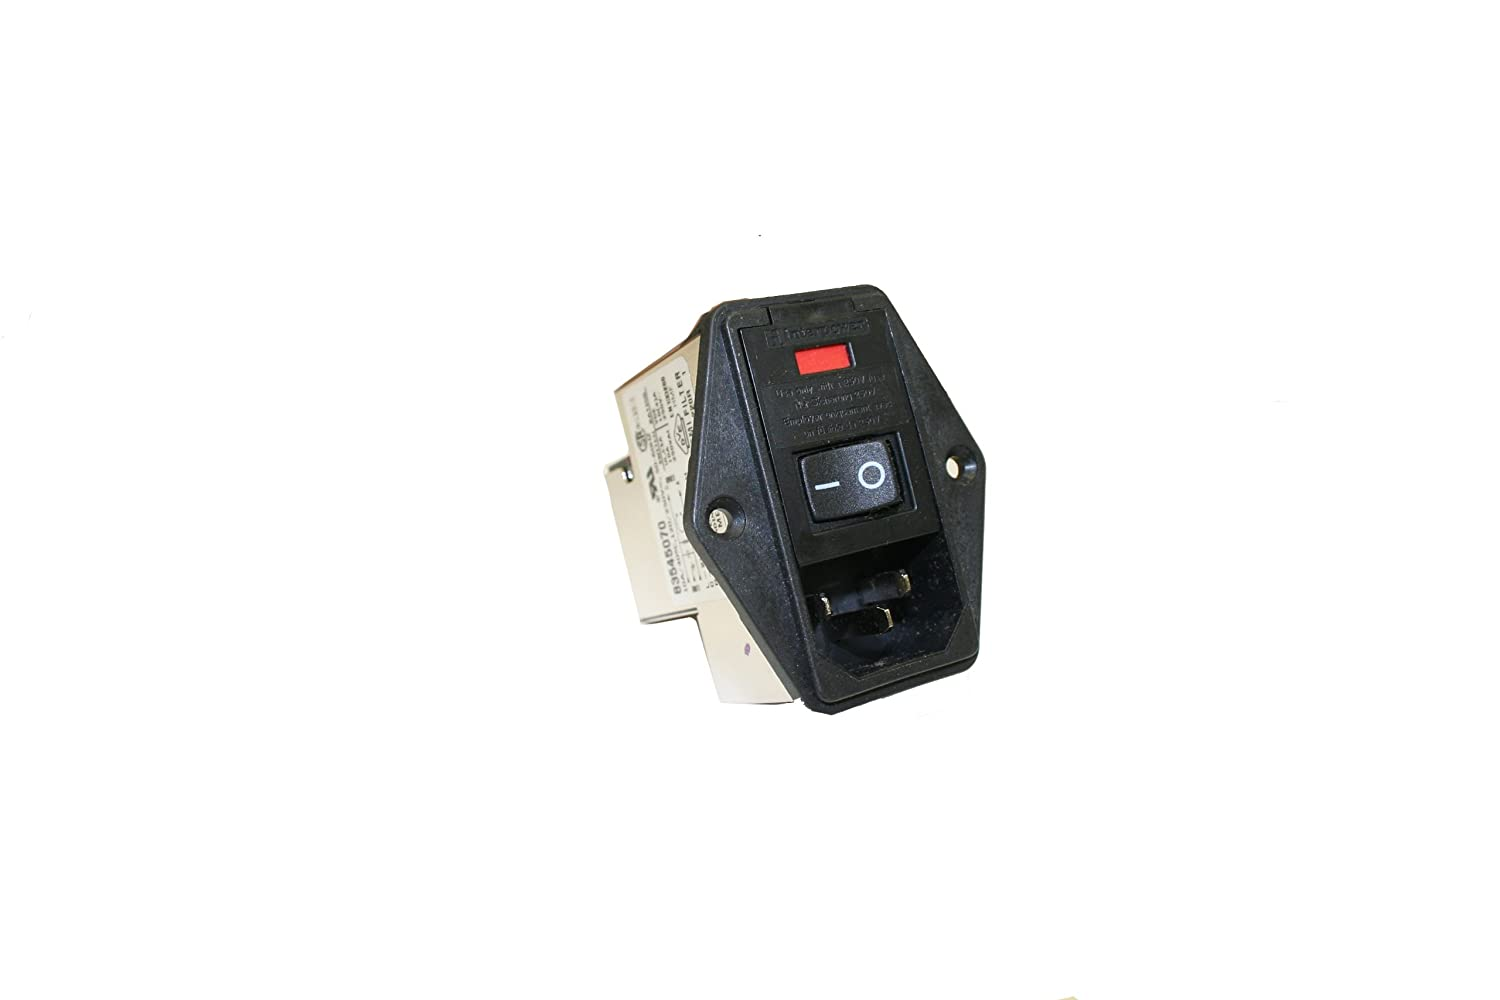 Filter 120//250VAC Voltage Rating Double Fused Interpower 83545070 Four Function Medical Grade Module Switch 10A Current Rating C14 Inlet